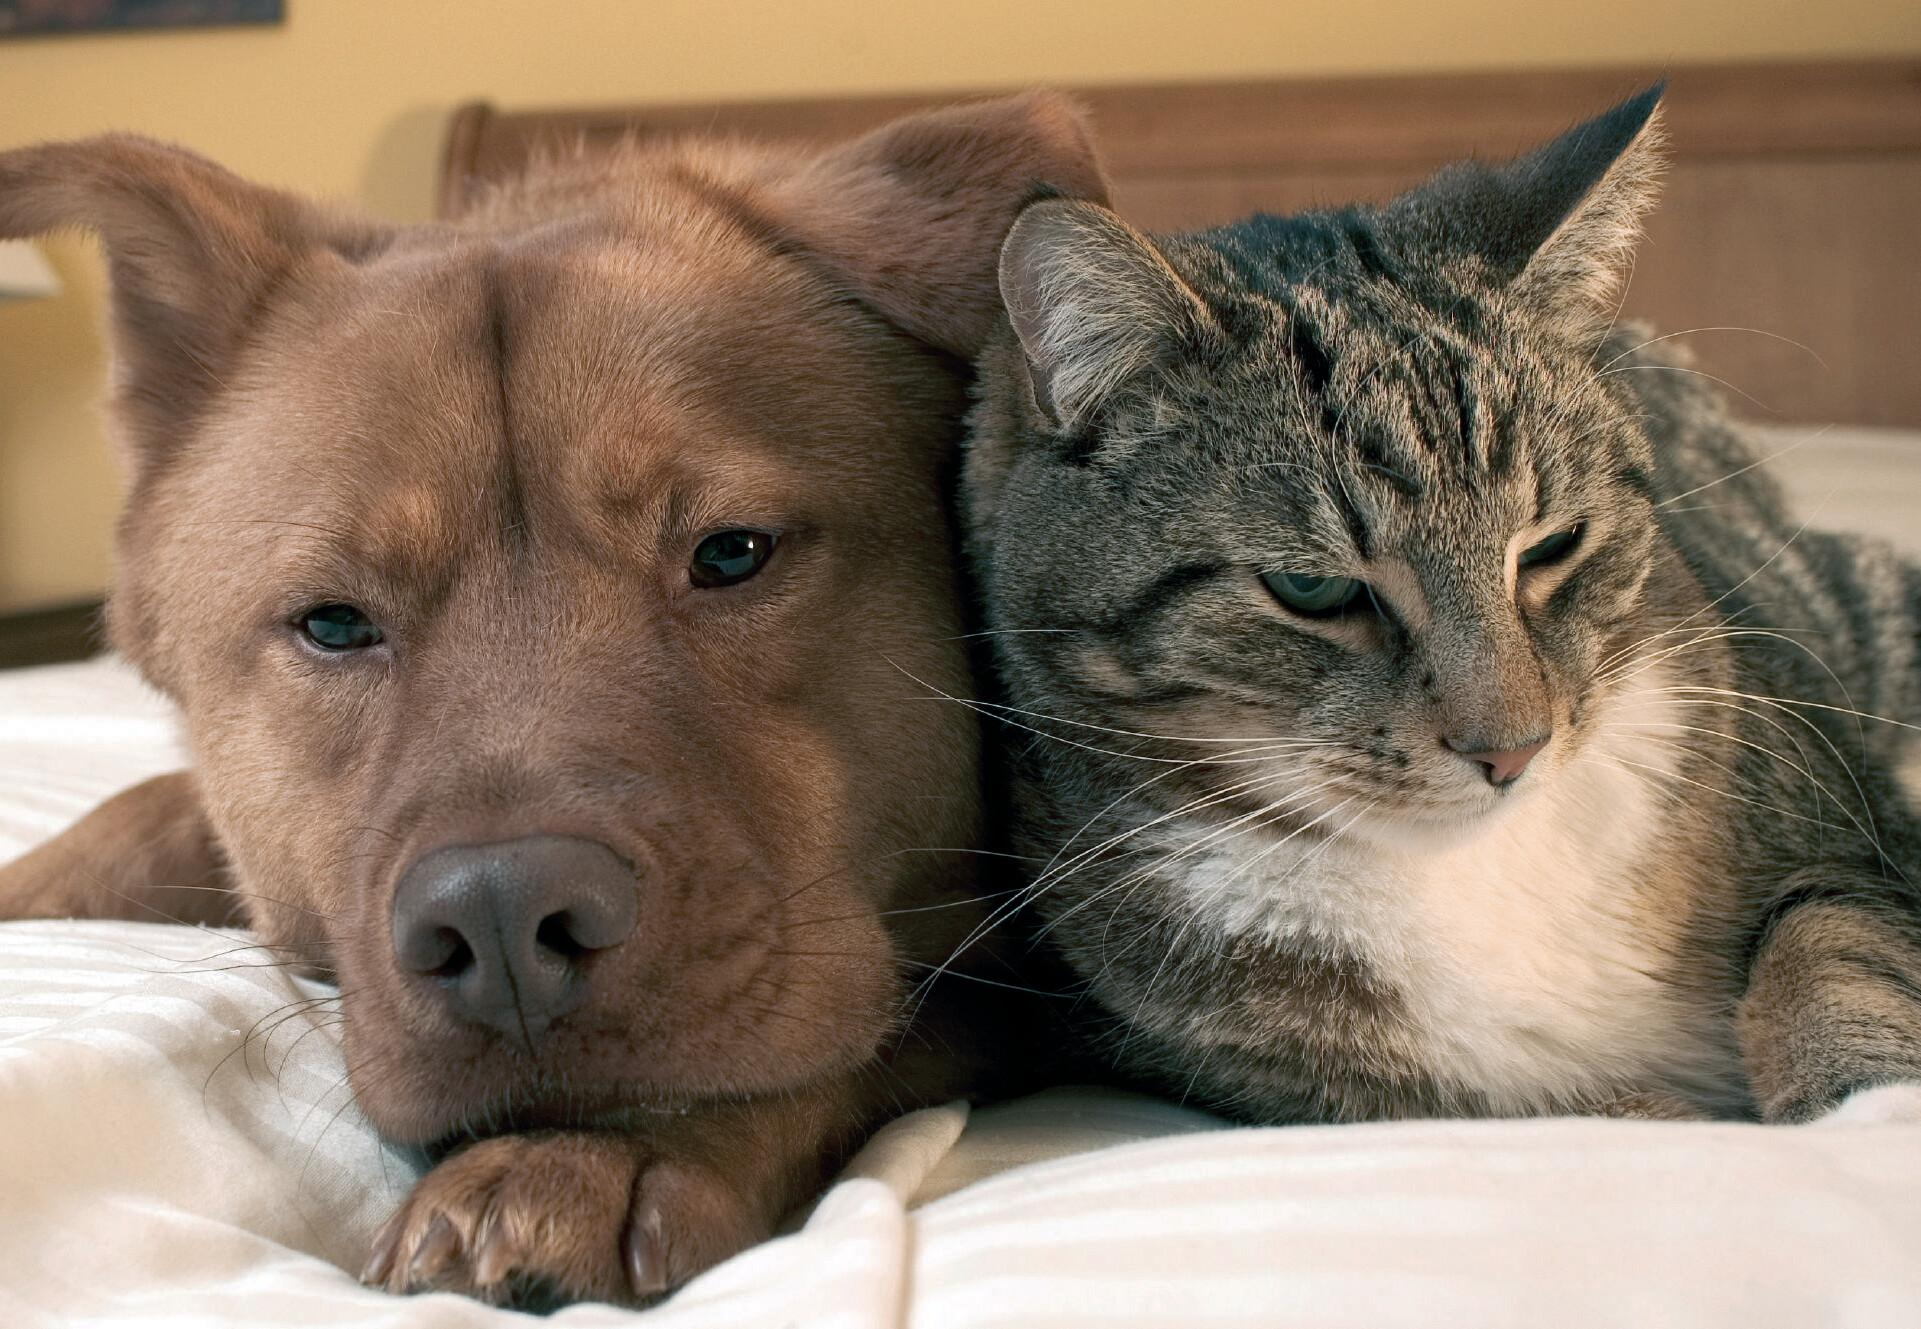 Dog and cat at home